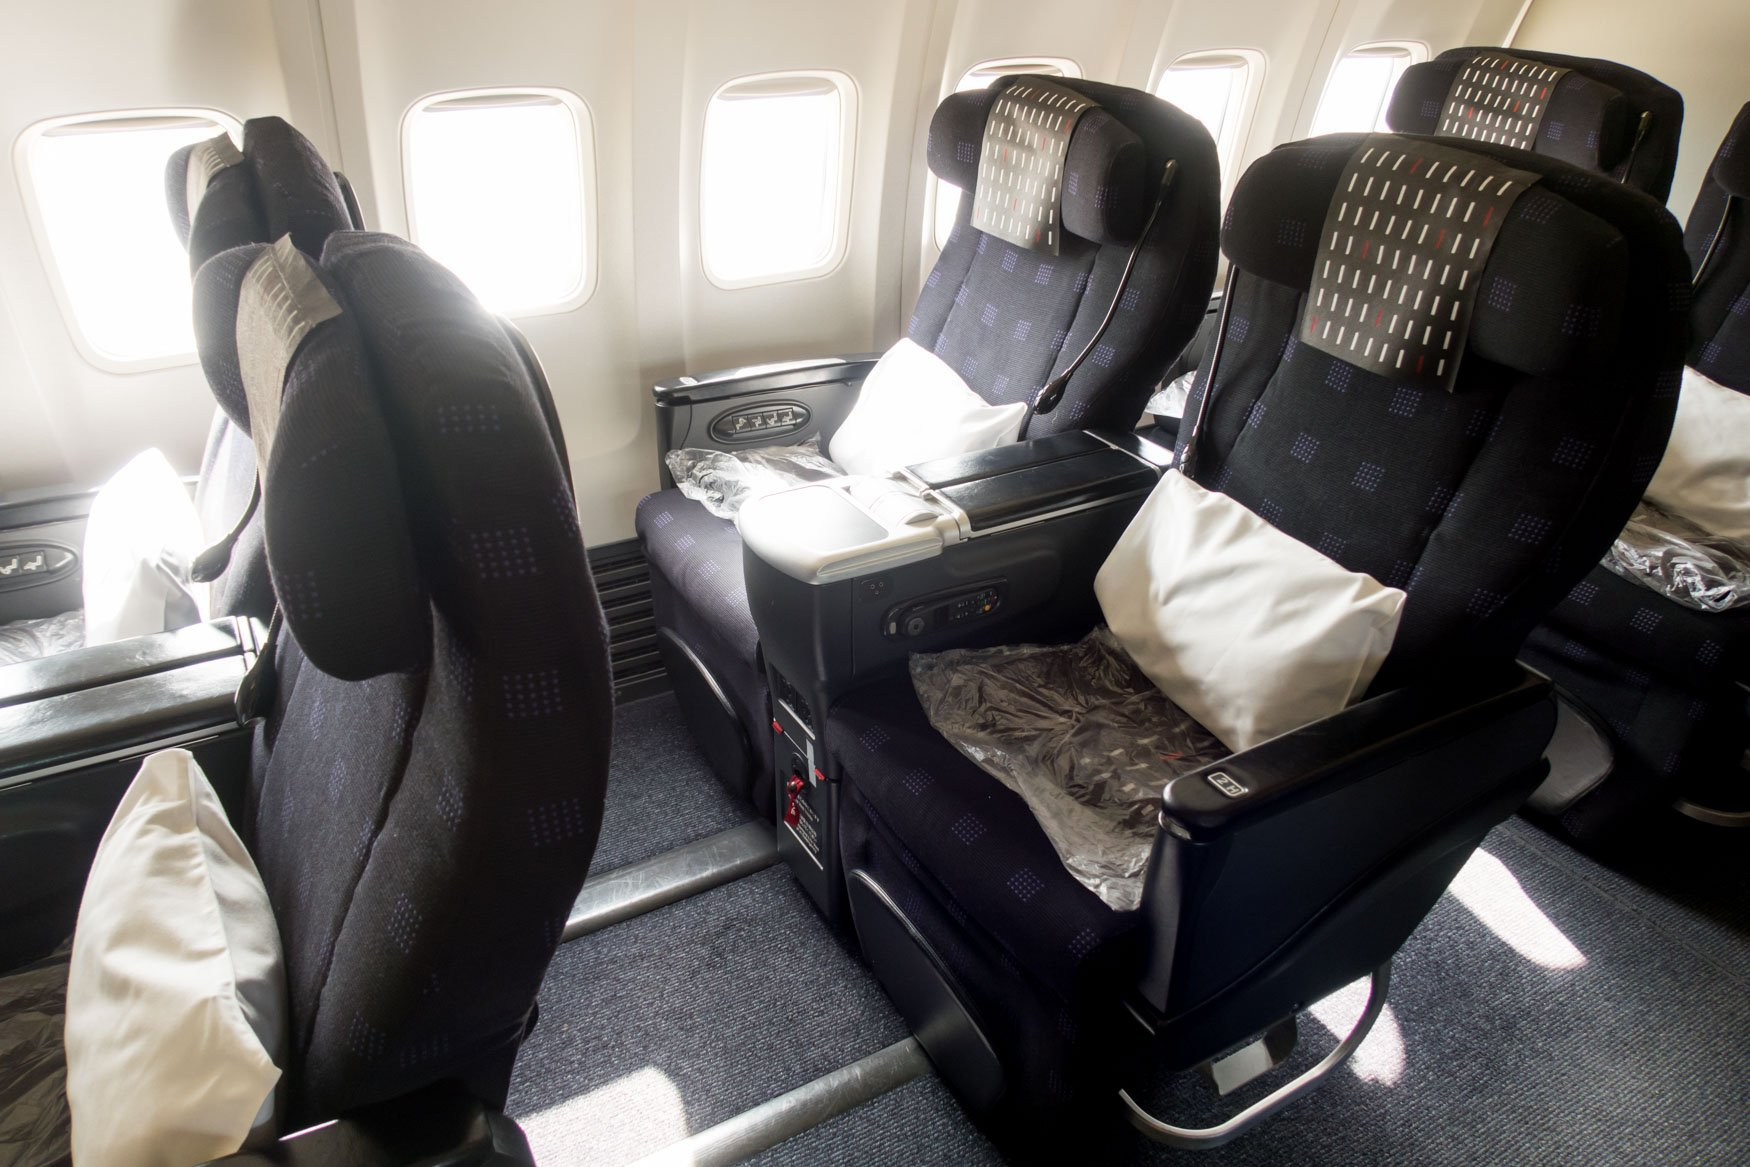 JAL SKYLUXE Seat